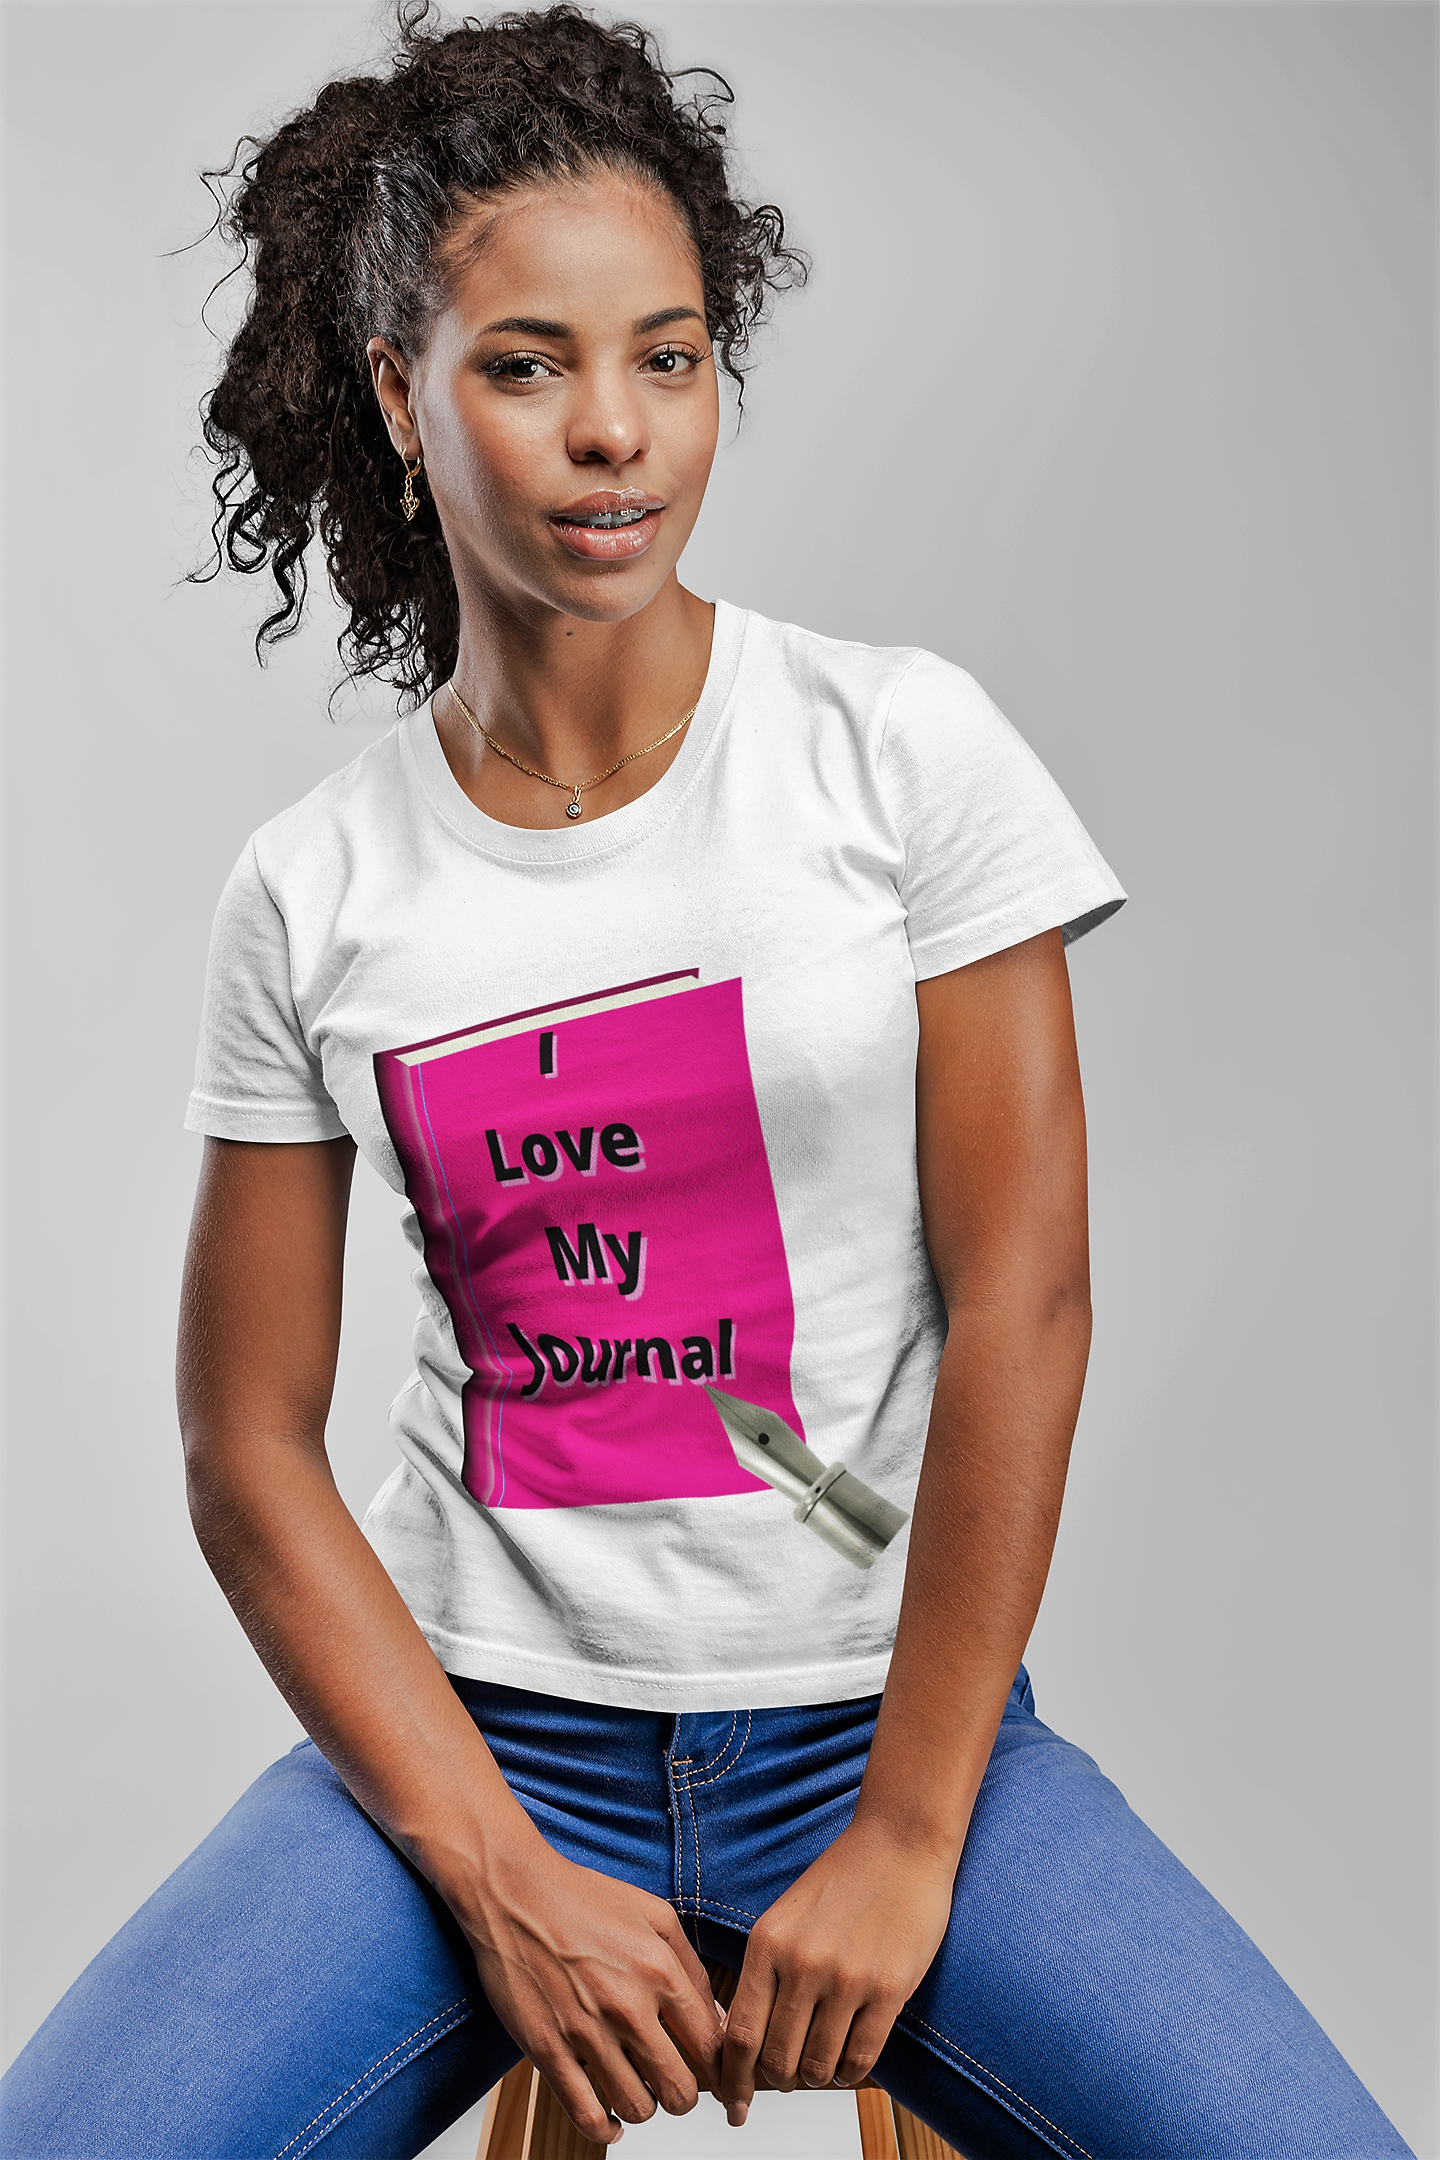 I Love My Journal TShirt Uply Media Inc